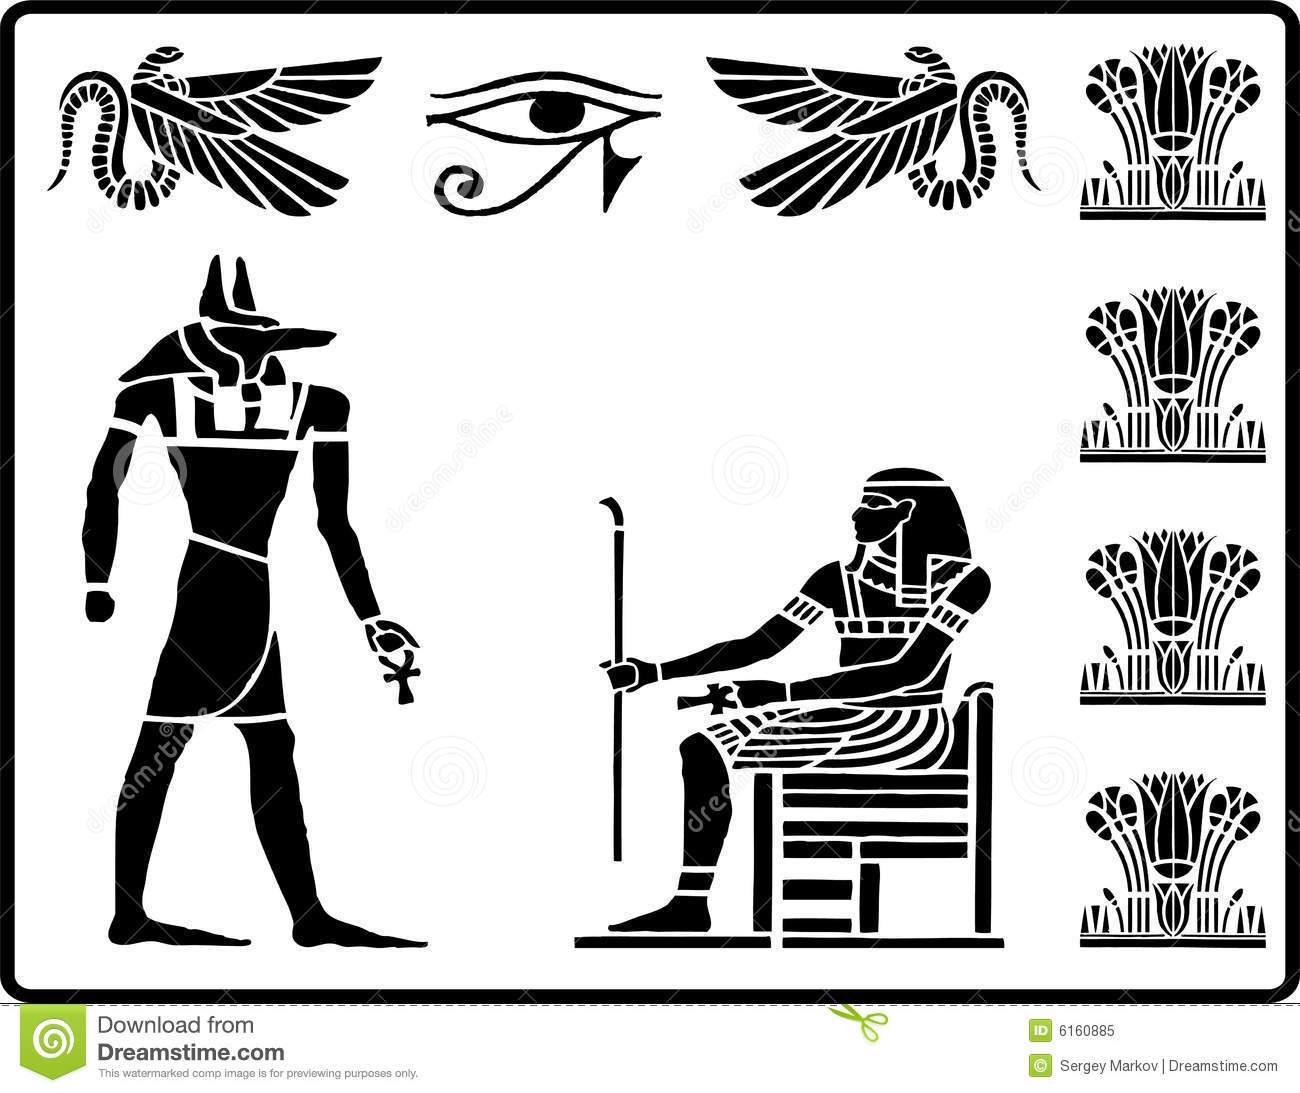 Egyptian Hieroglyphics - 2 Royalty Free Stock Photo - Image: 6160885